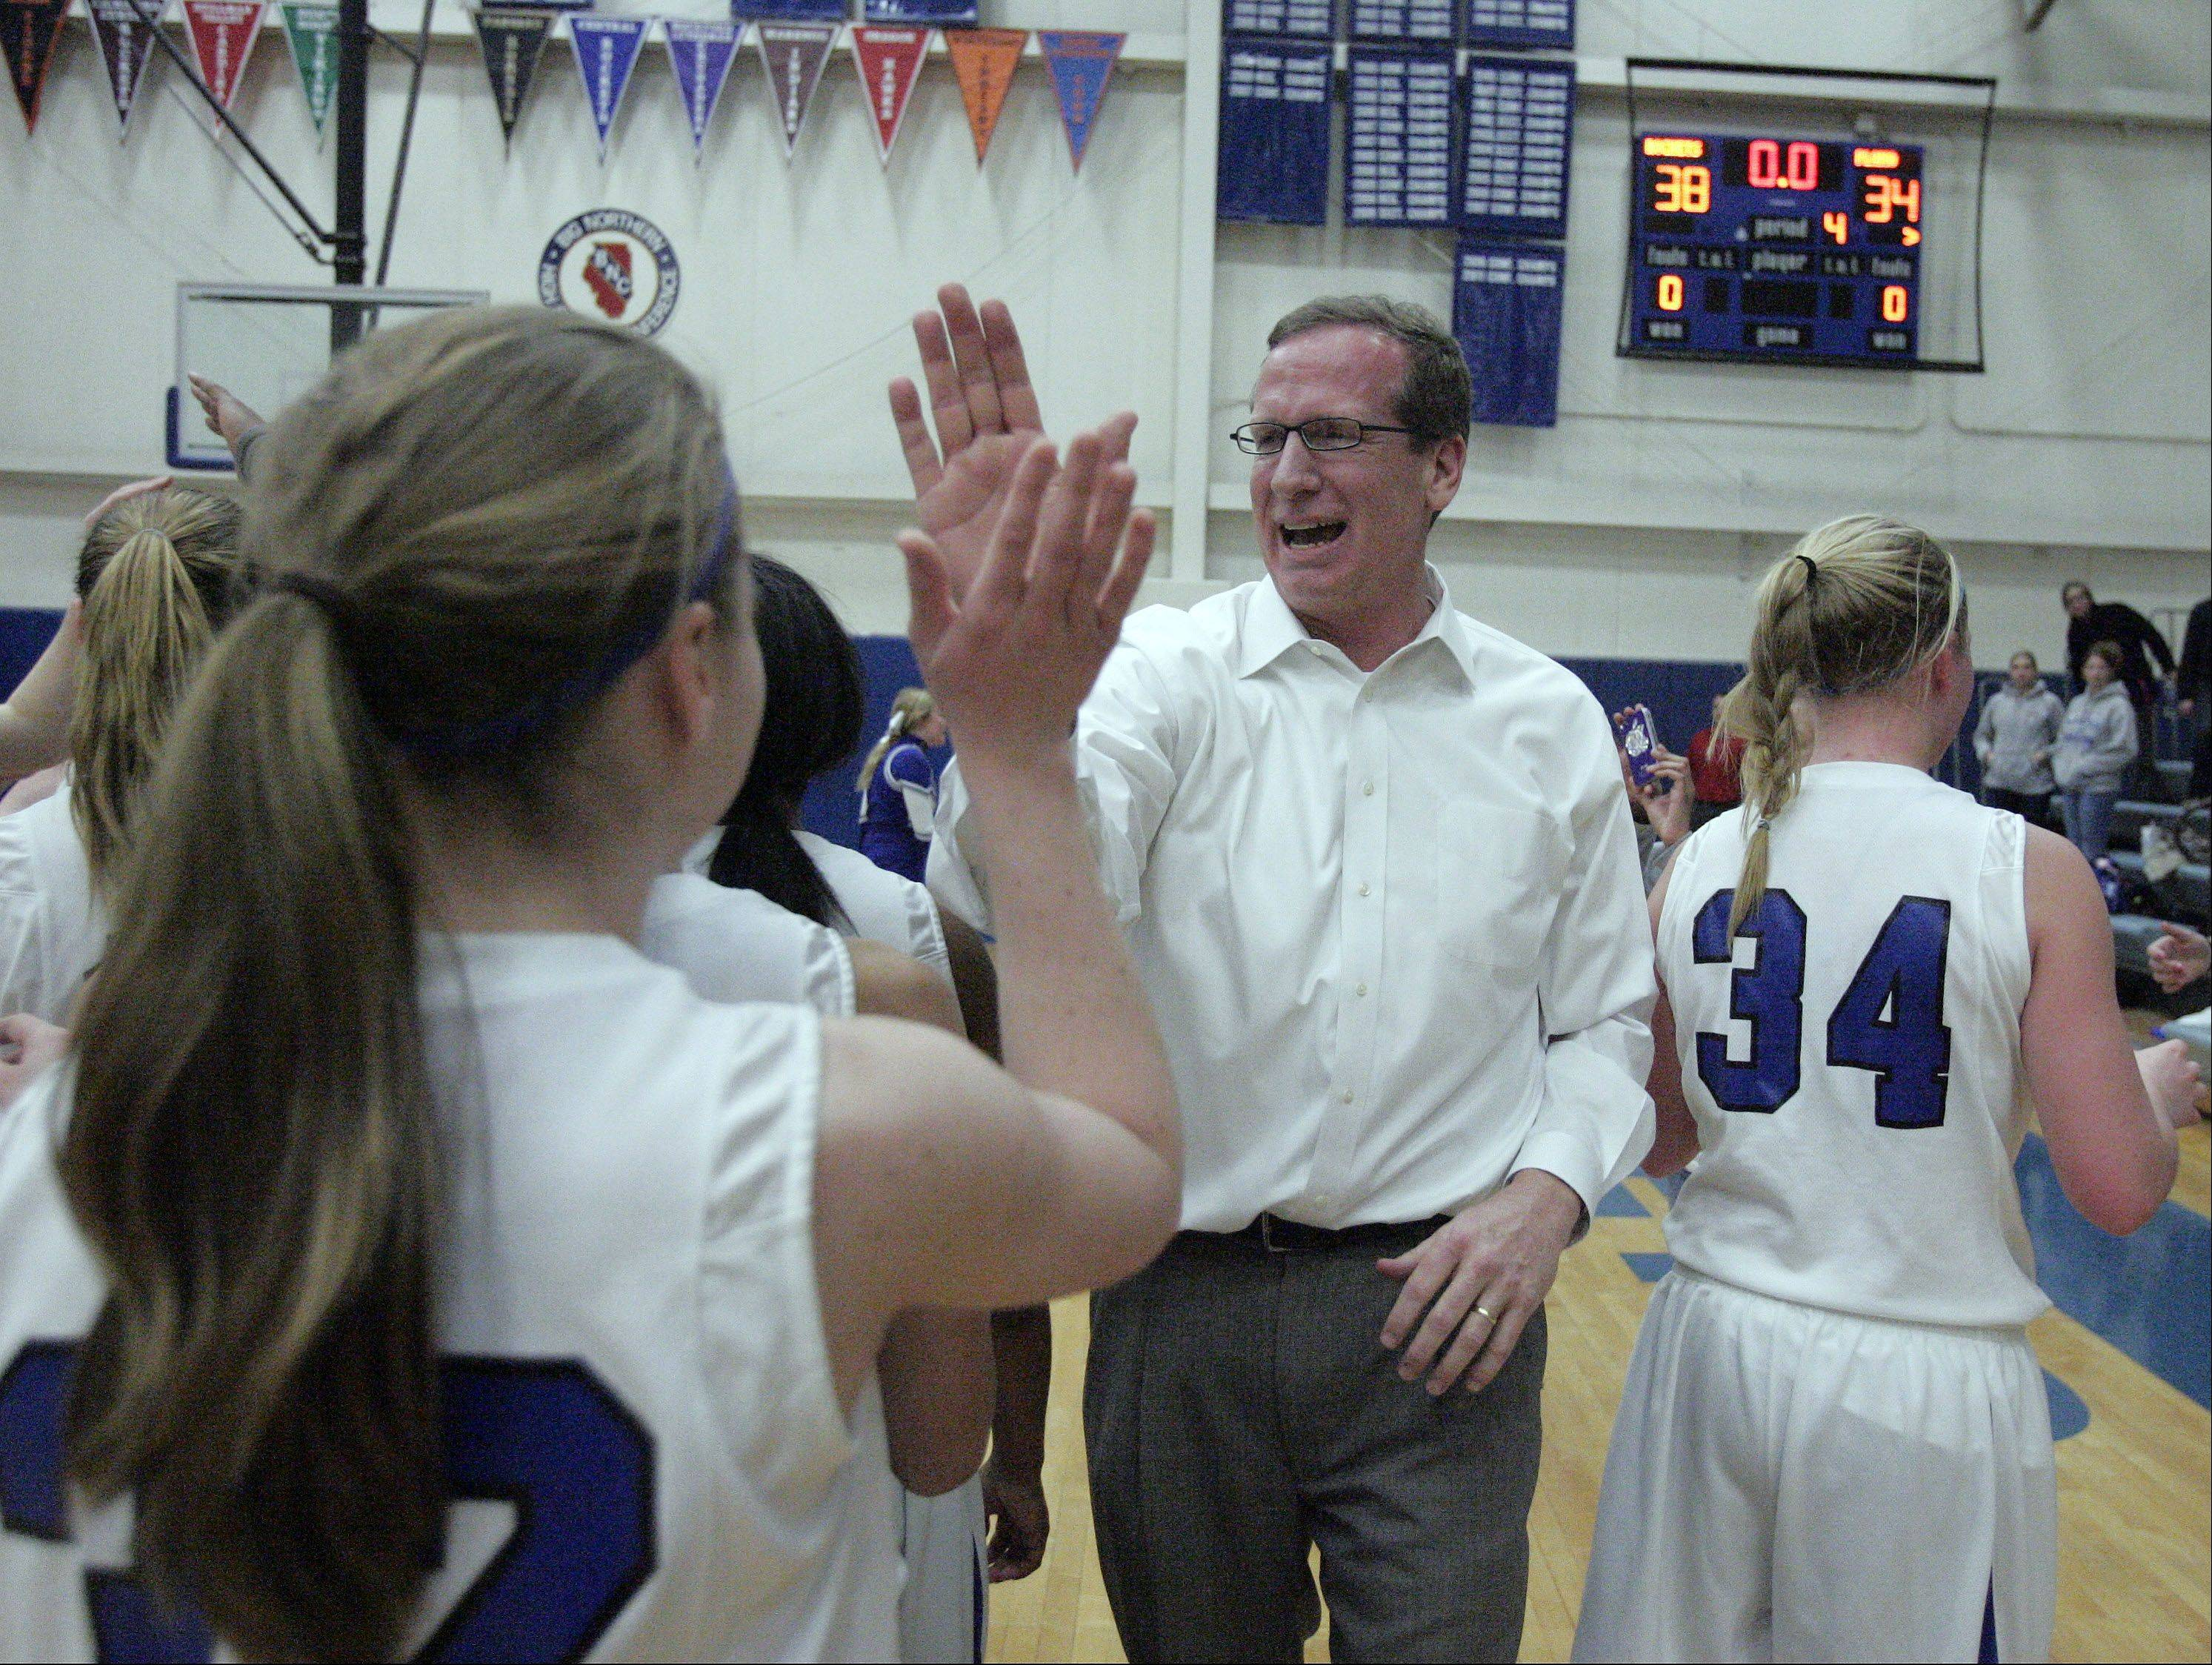 Burlington Central girls basketball coach Mark Smith celebrates the Rockets' Class 3A regional championship win over Plano Friday night.